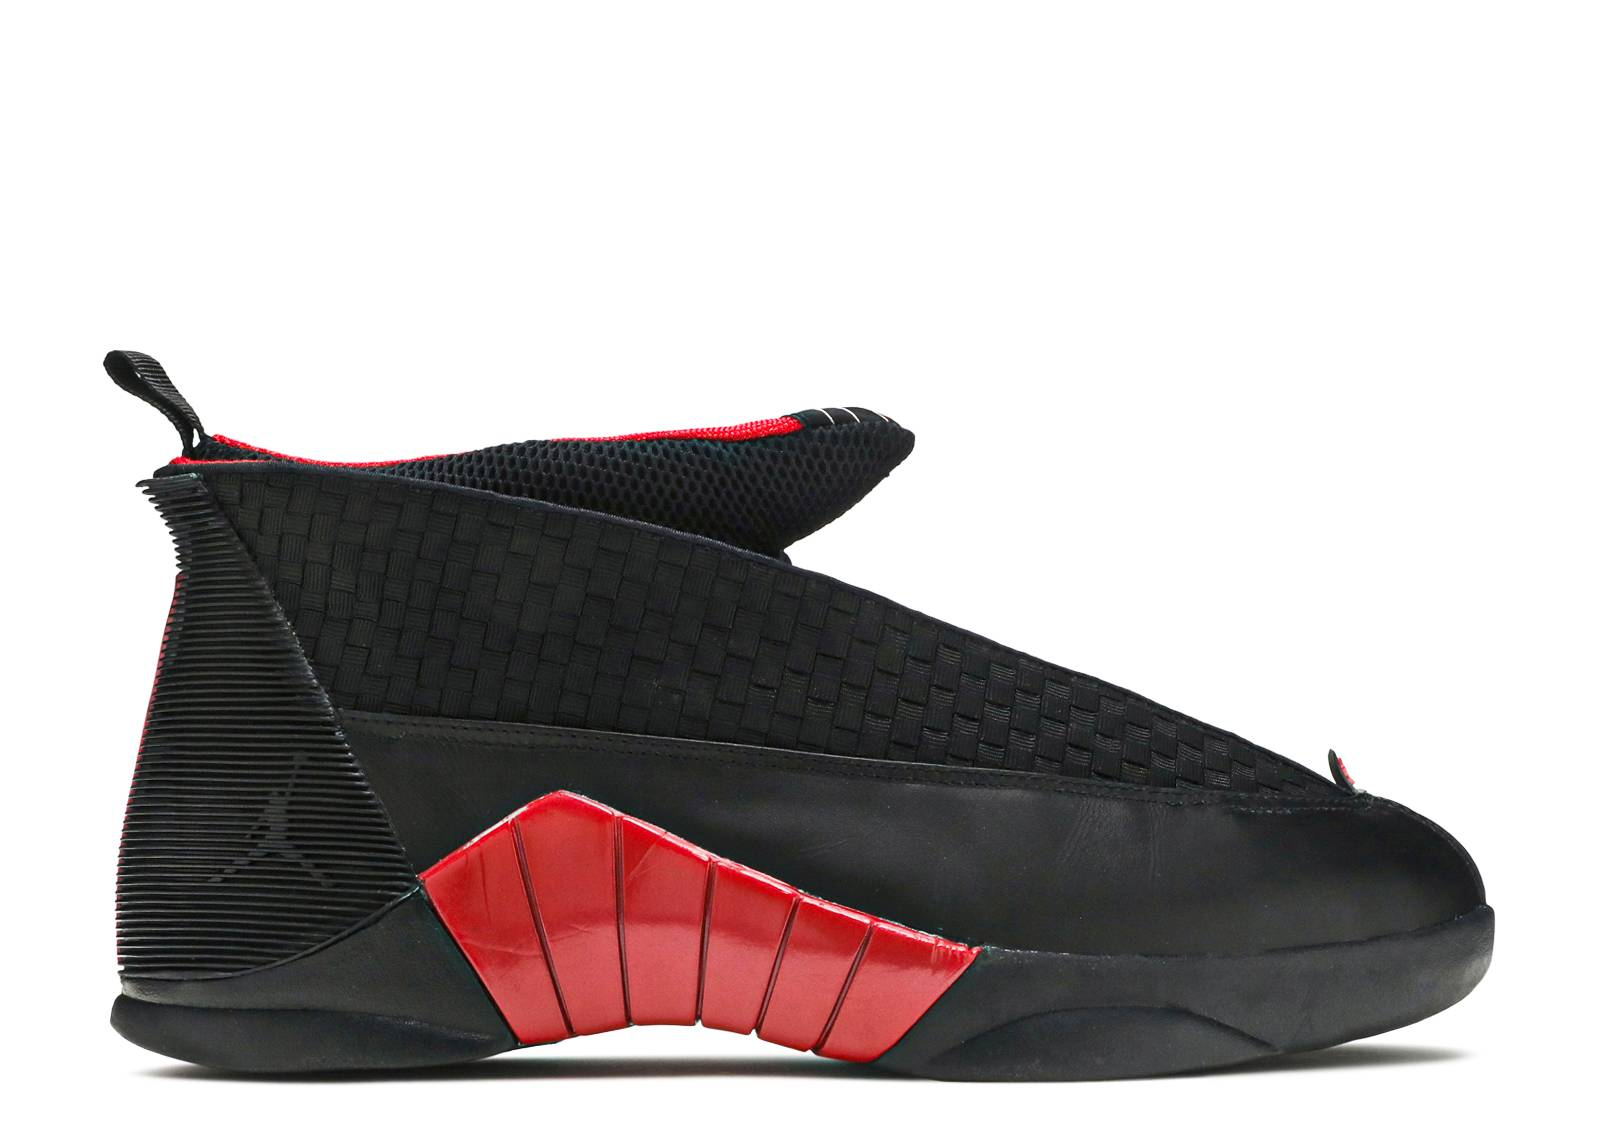 new release new lower prices low priced air jordan 15 retro